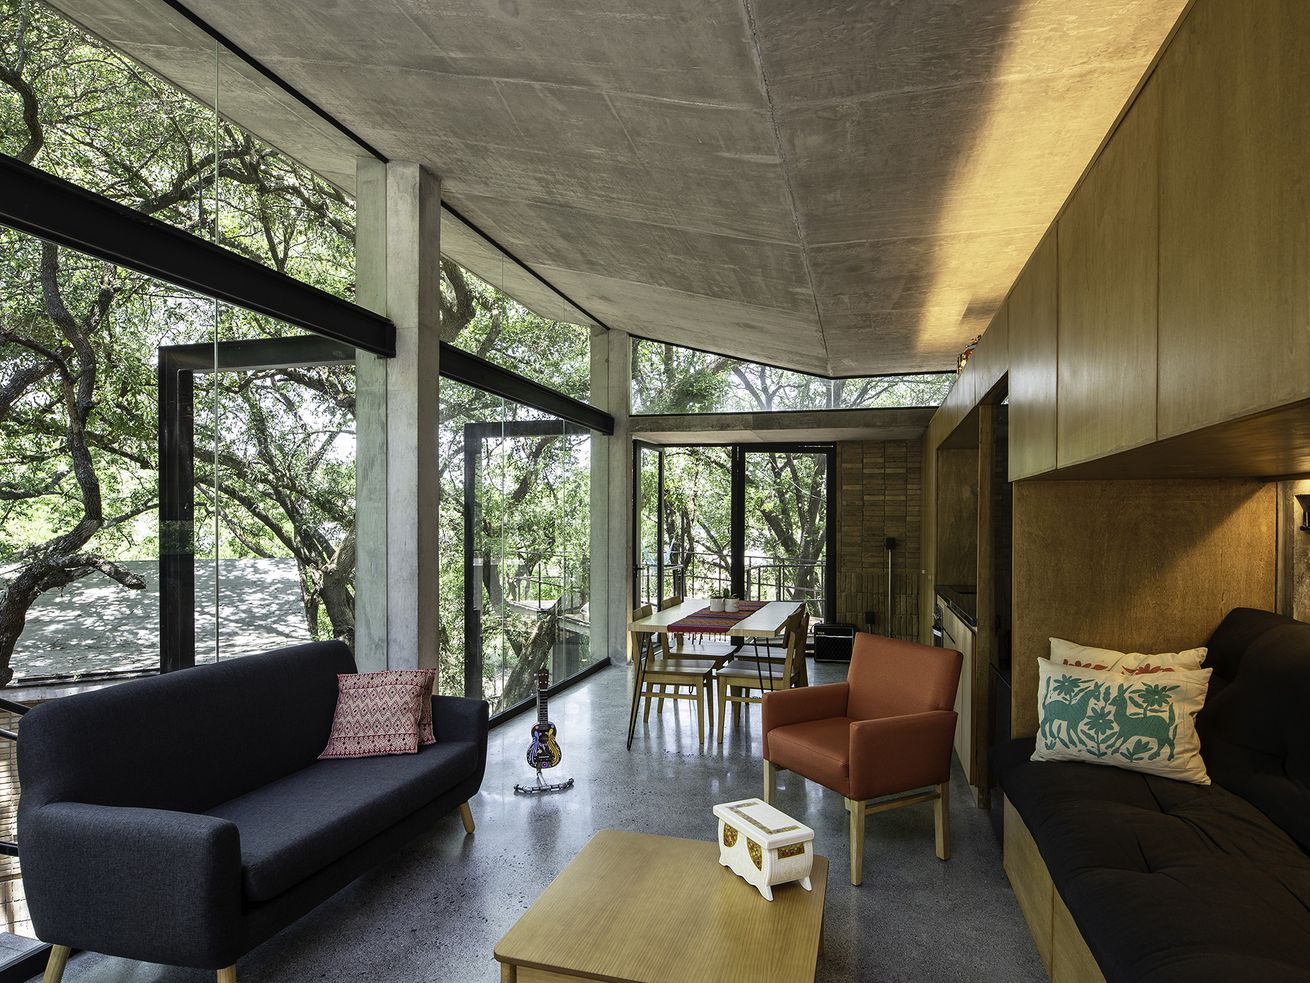 A modern, multi-level treehouse in the middle of a Mexican forest